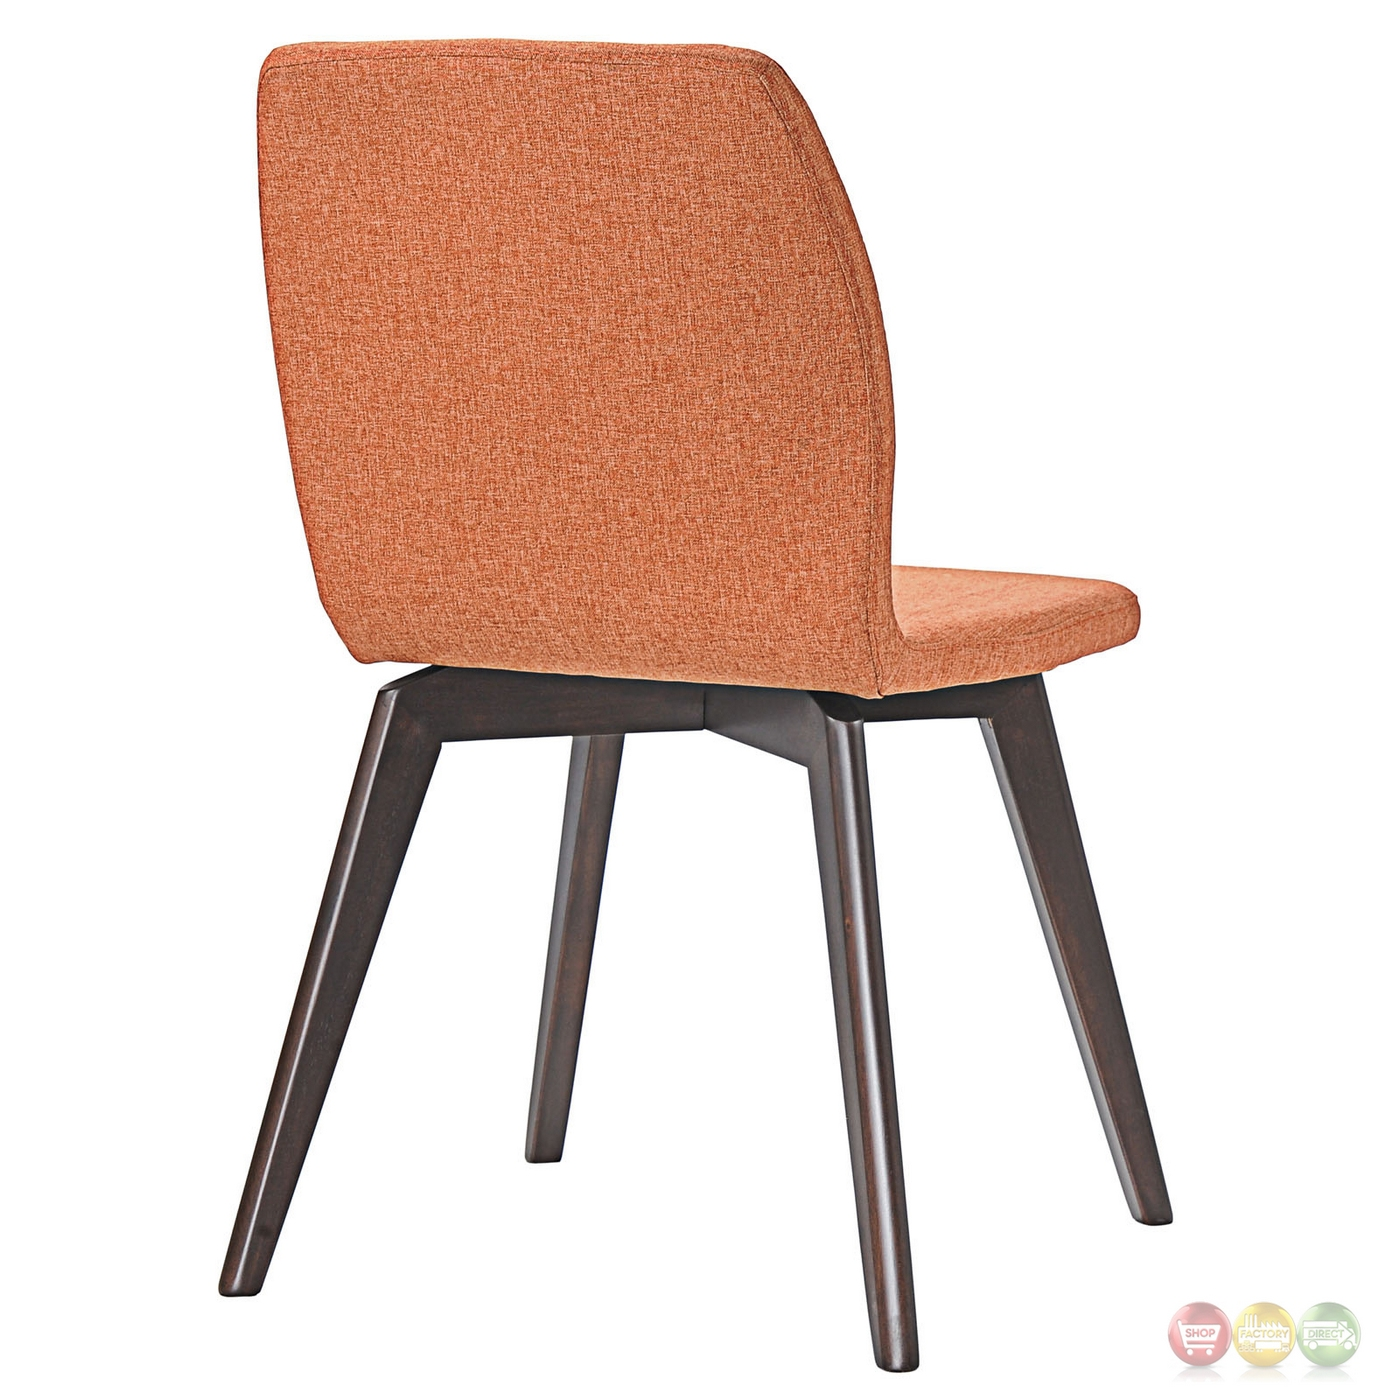 orange upholstered chair small lift chairs proclaim modern wooden dining side